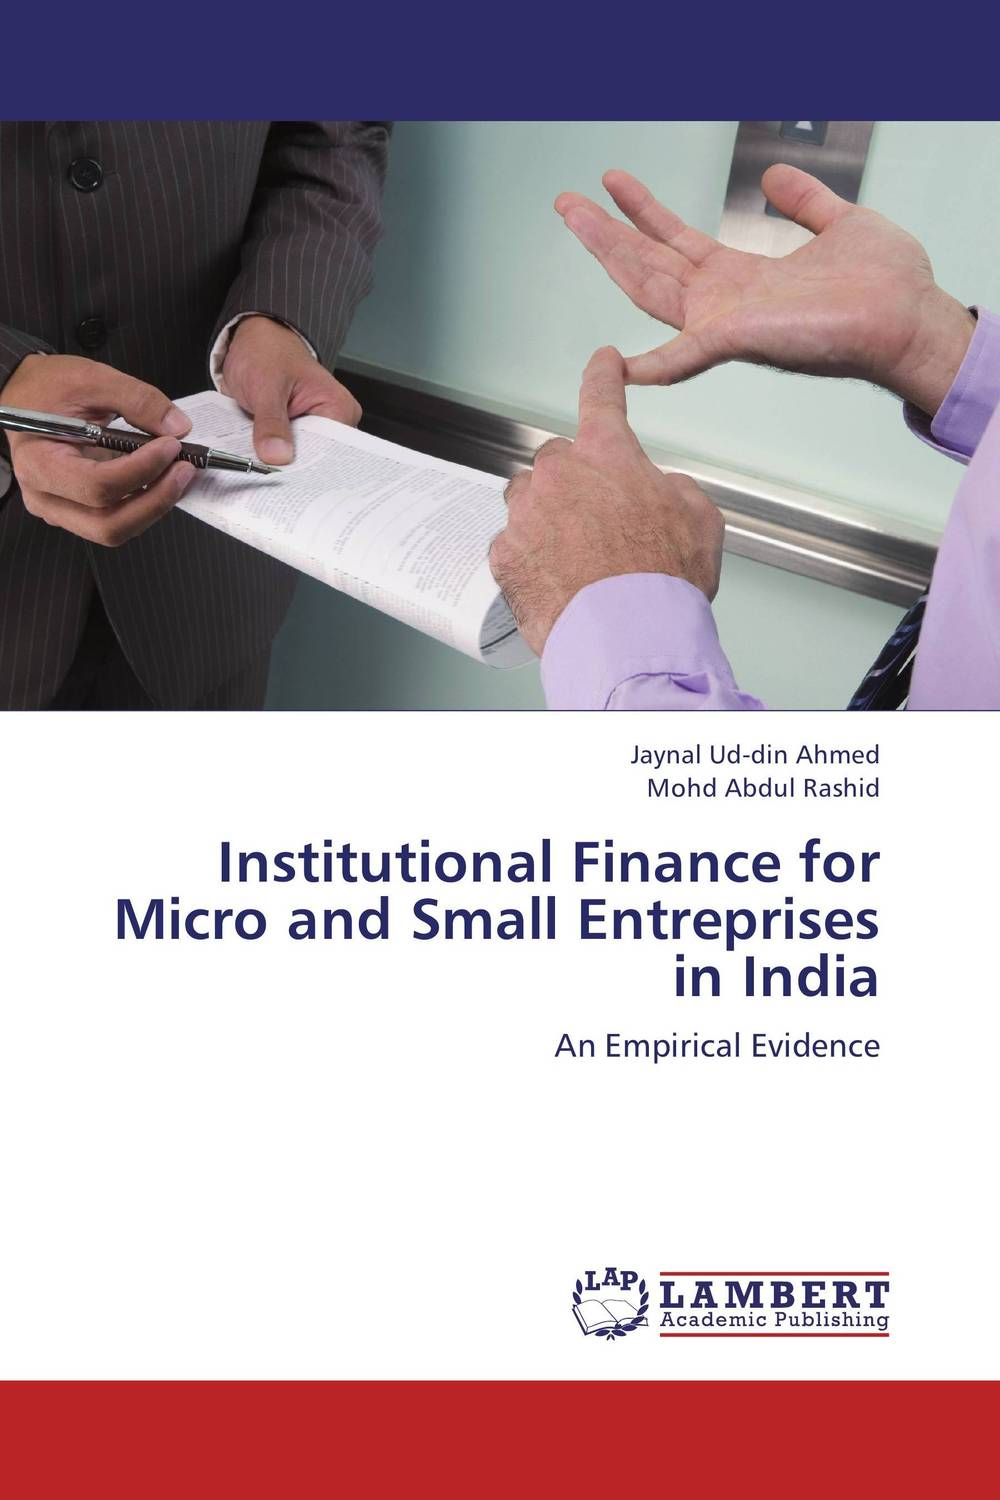 Institutional Finance for Micro and Small Entreprises in India jaynal ud din ahmed and mohd abdul rashid institutional finance for micro and small entreprises in india